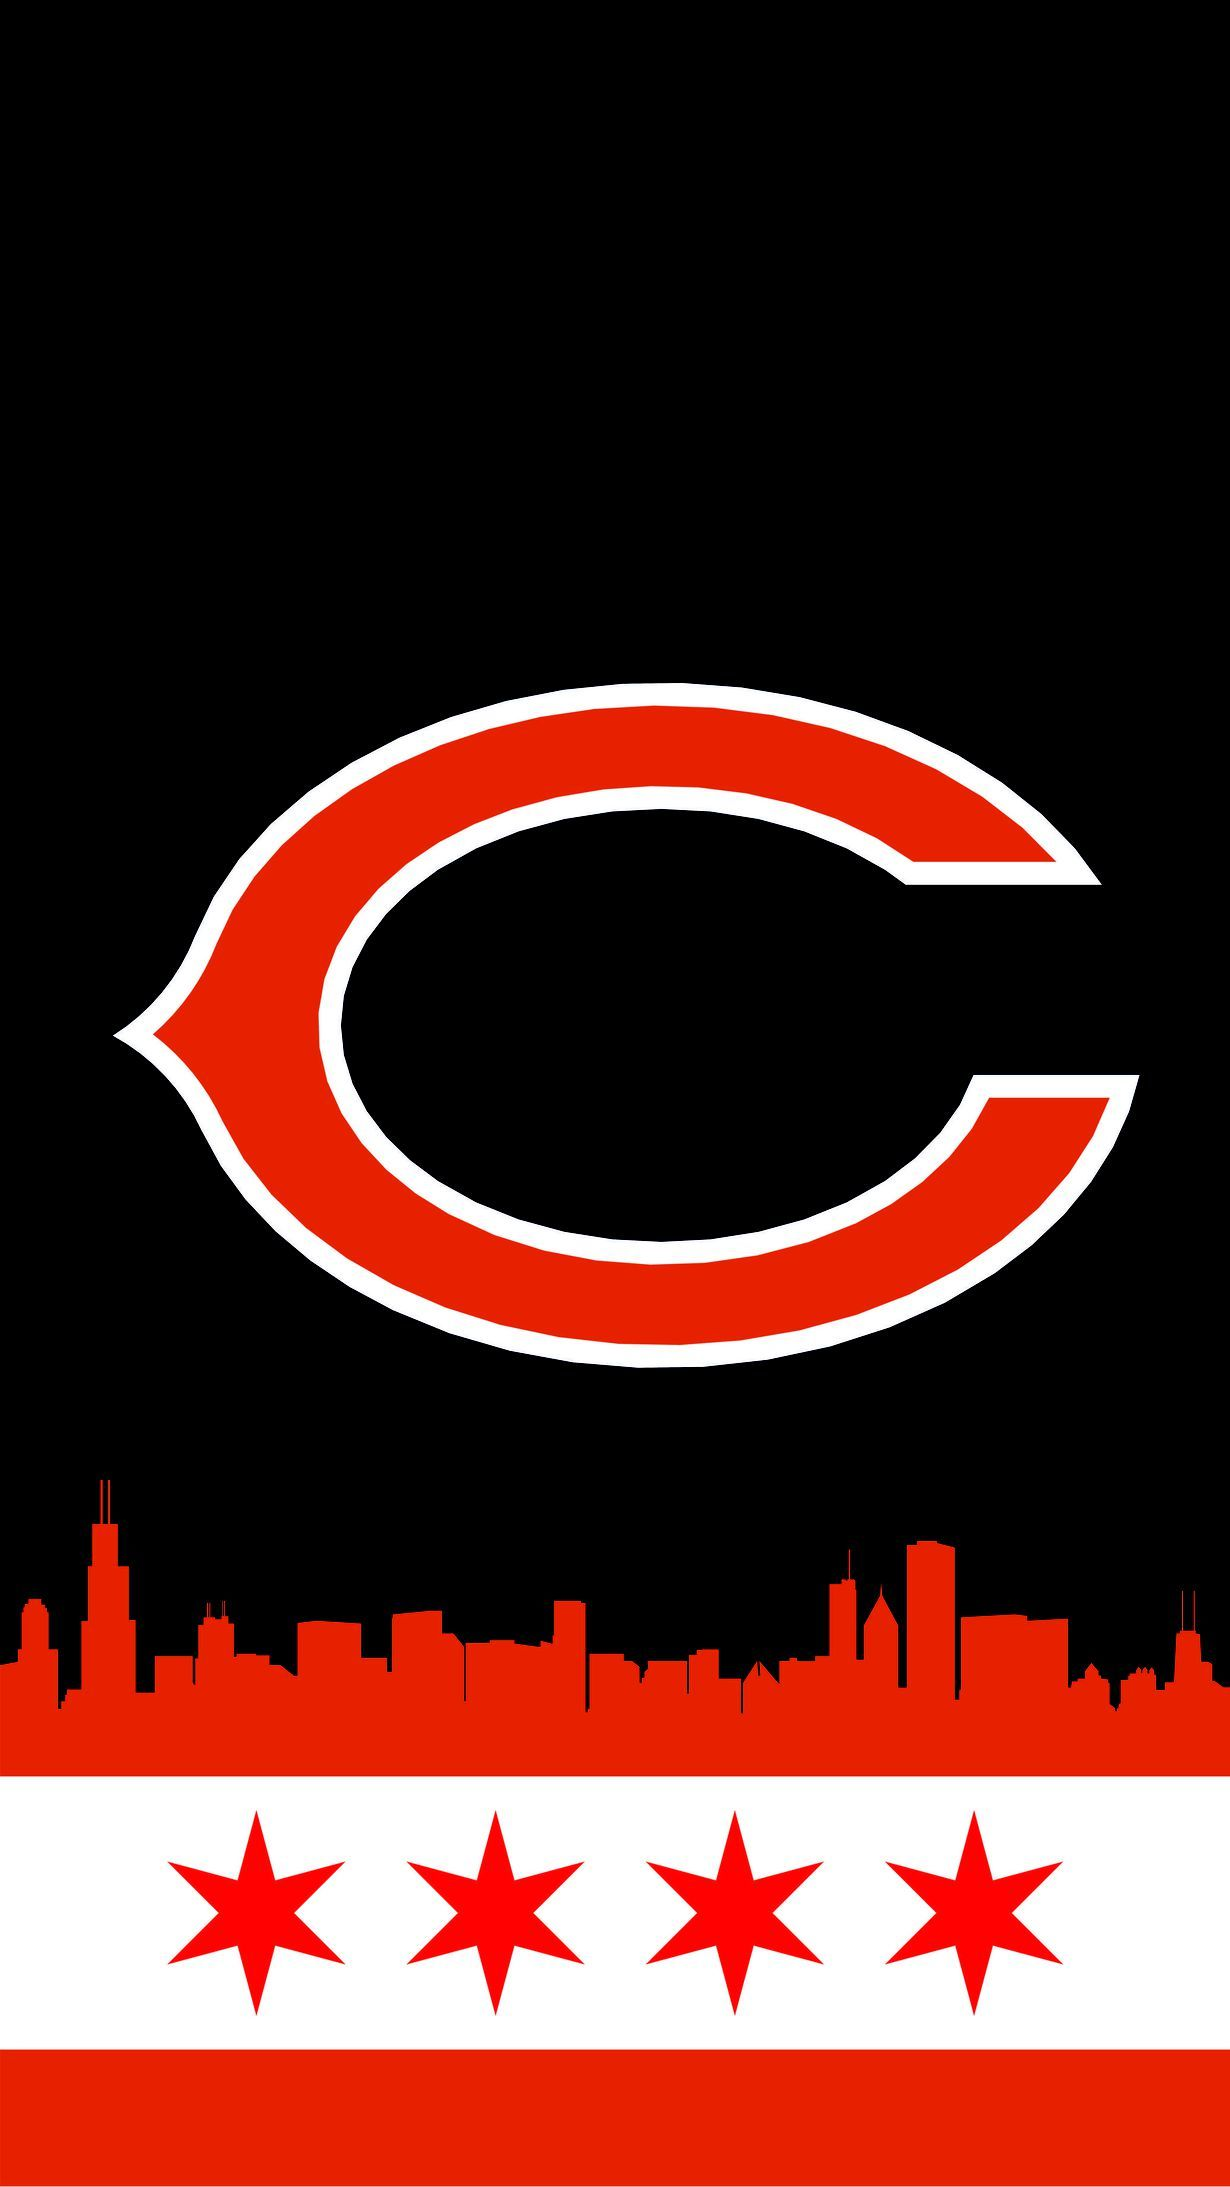 Chicago Bears Mobile Background Windy City Gridiron Chicago Bears Pictures Chicago Bears Chicago Bears Logo